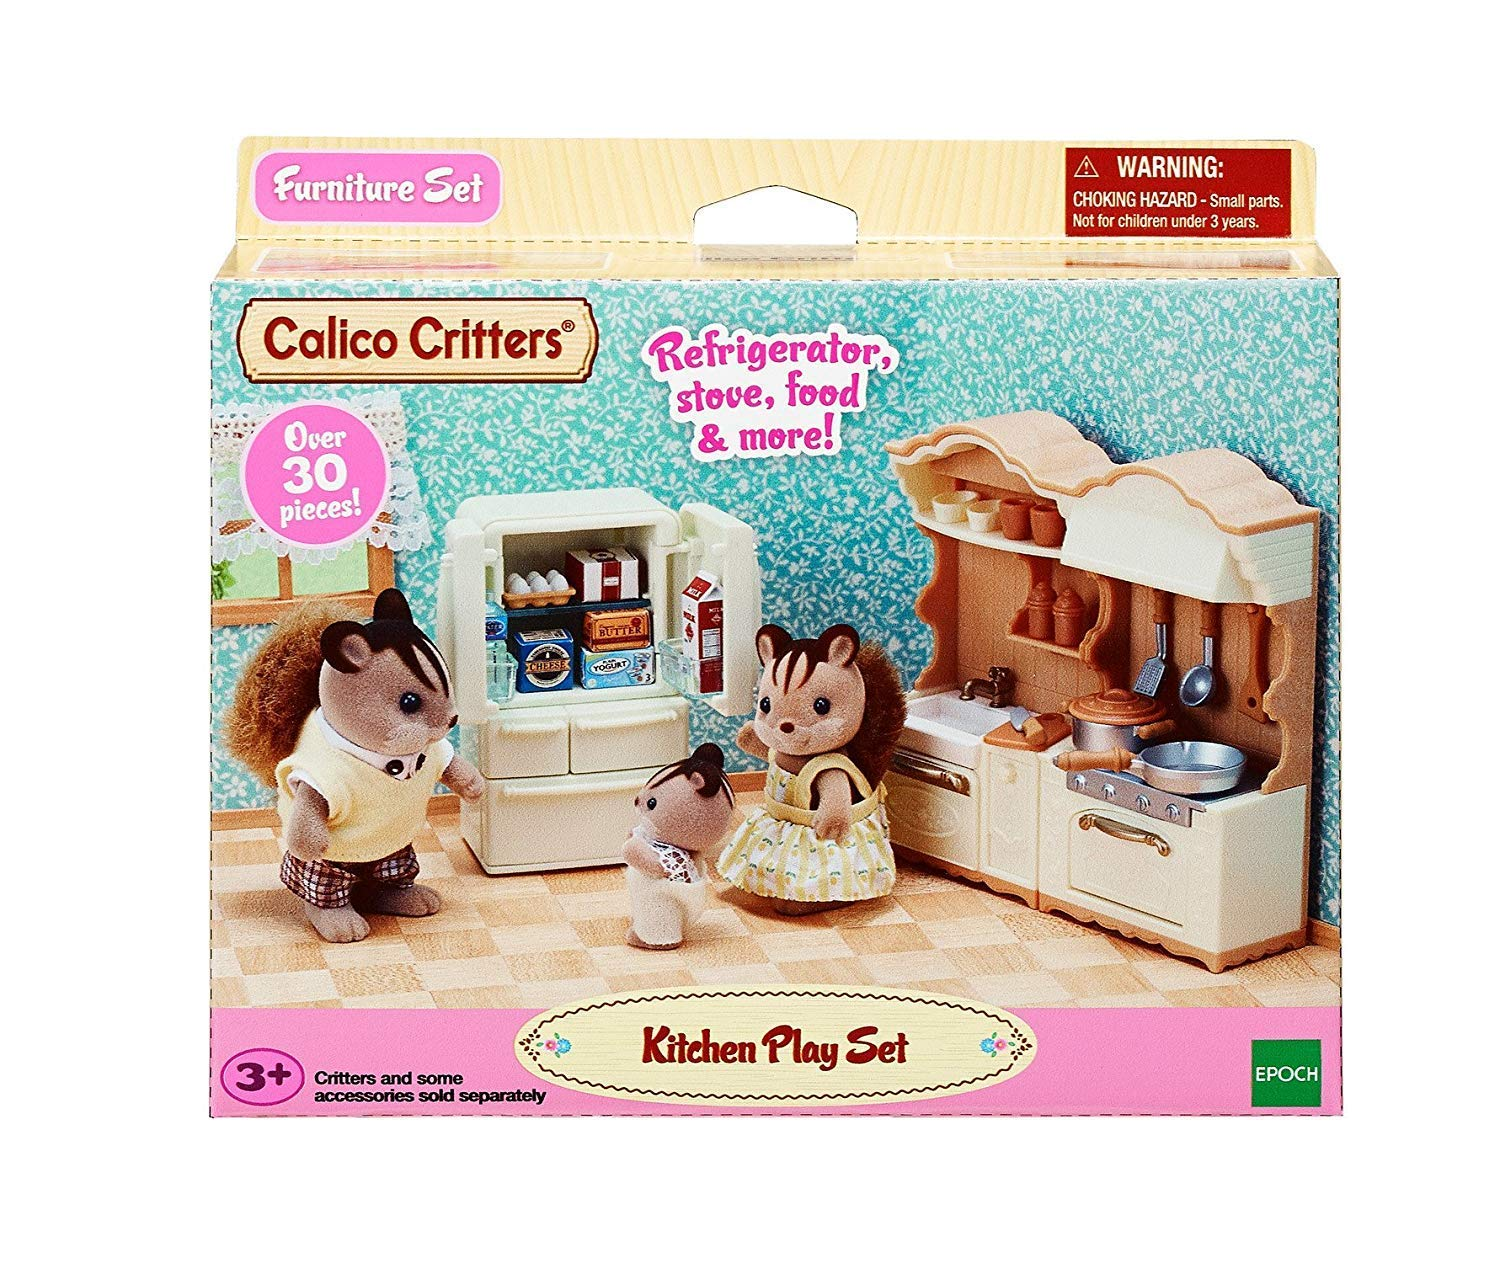 Calico Critters Kitchen Play Set $4.77 (Reg.$19.95